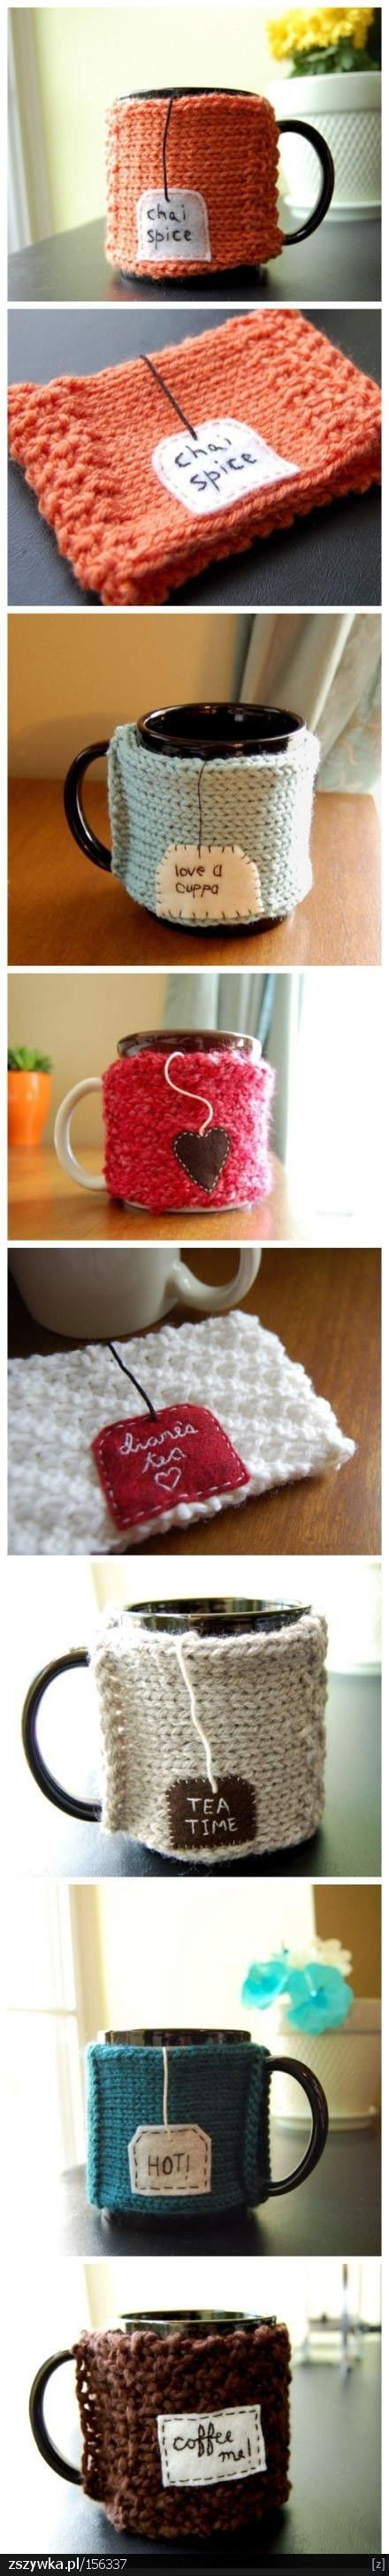 because we love our tea so much we need to give our cups sweaters